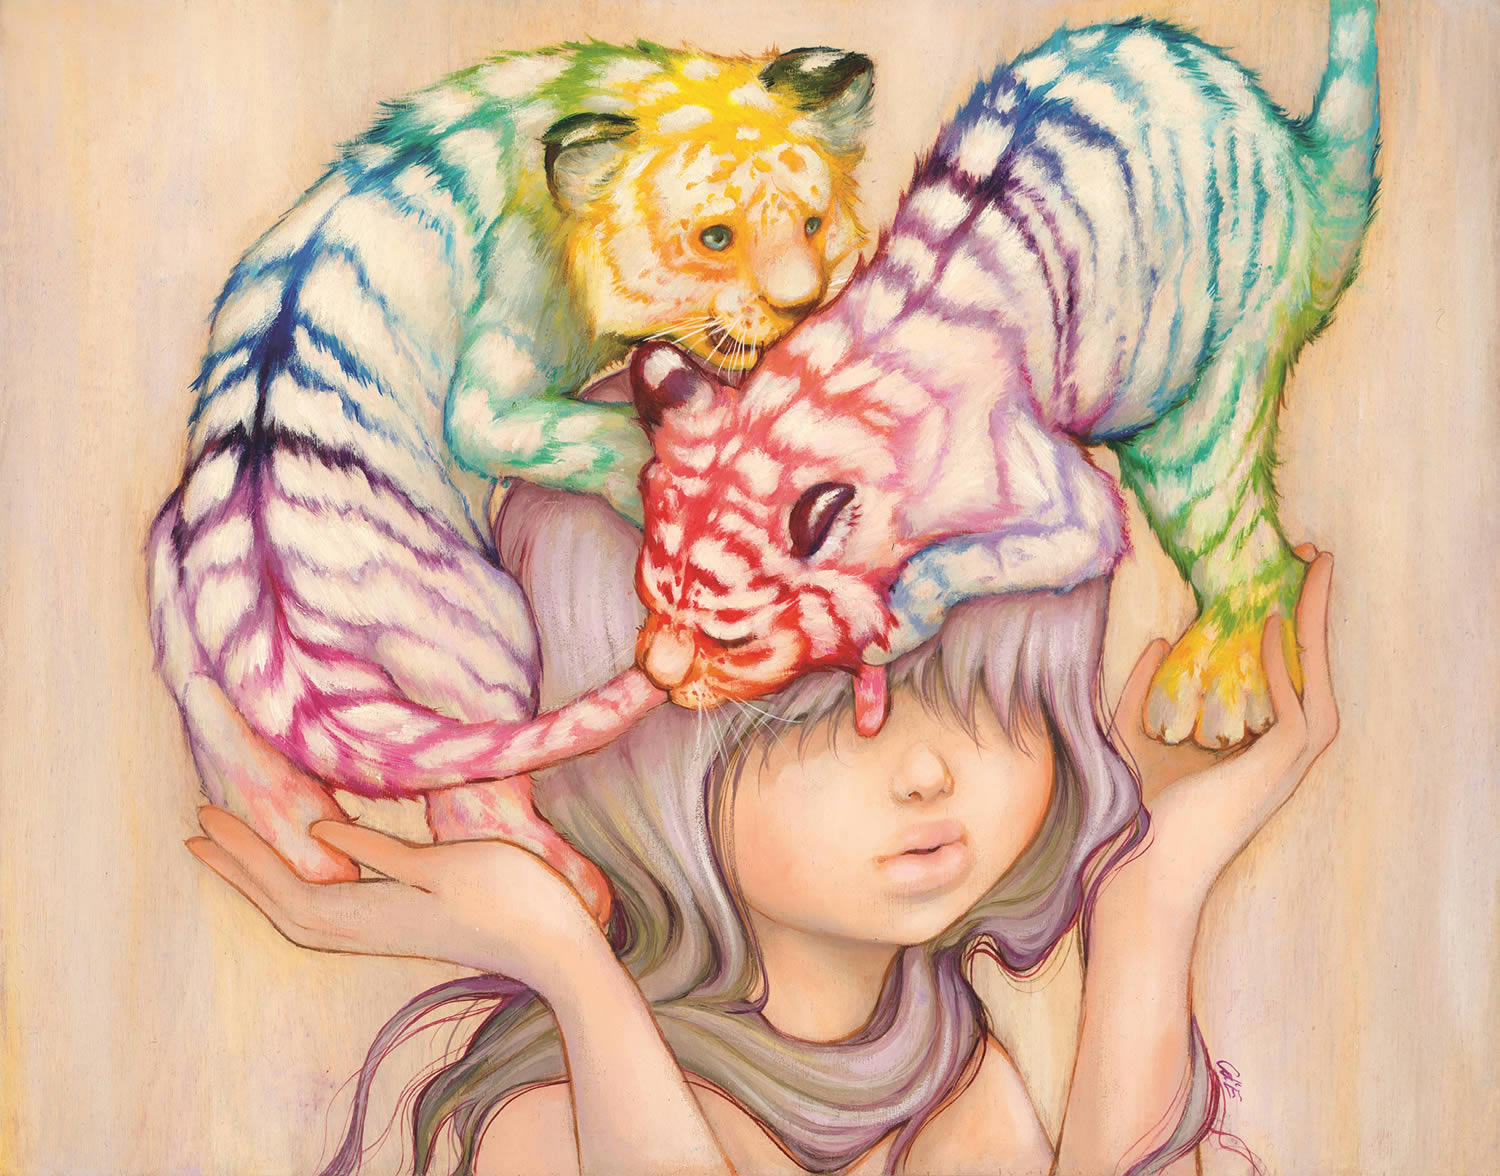 baby tigers on girl's head, painting by Camilla d'Errico